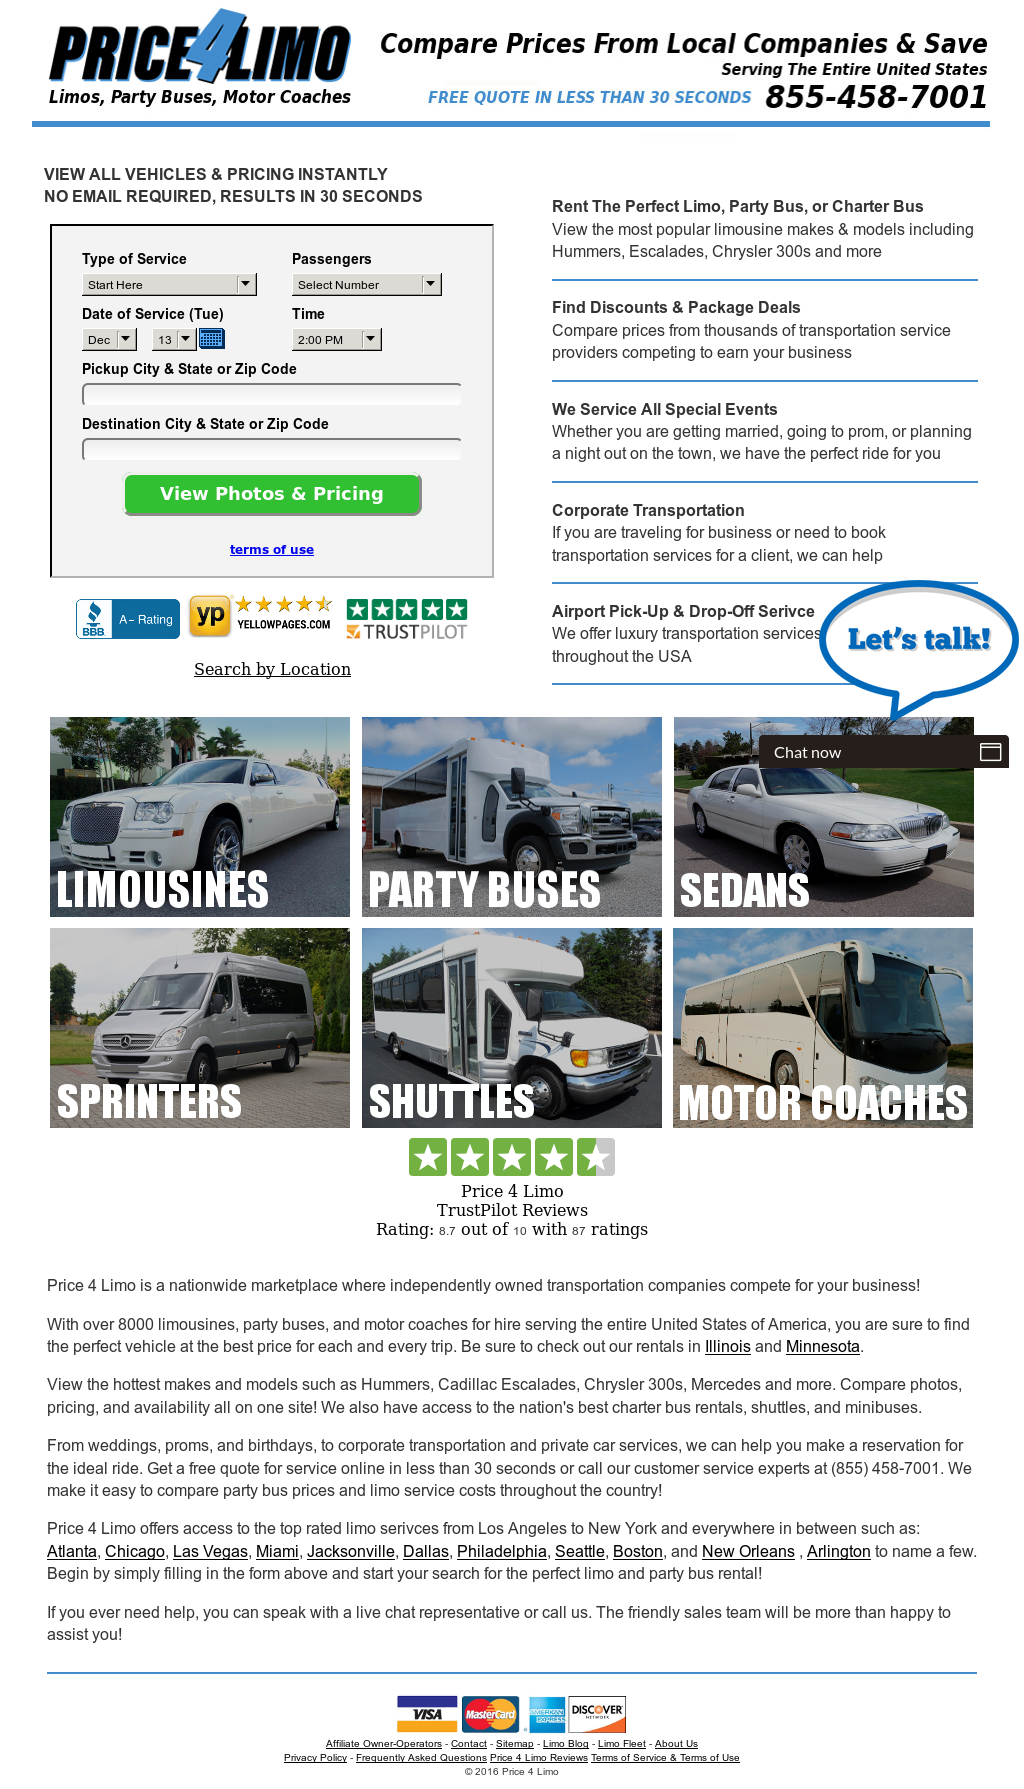 Price 4 Limo Competitors, Revenue and Employees - Owler